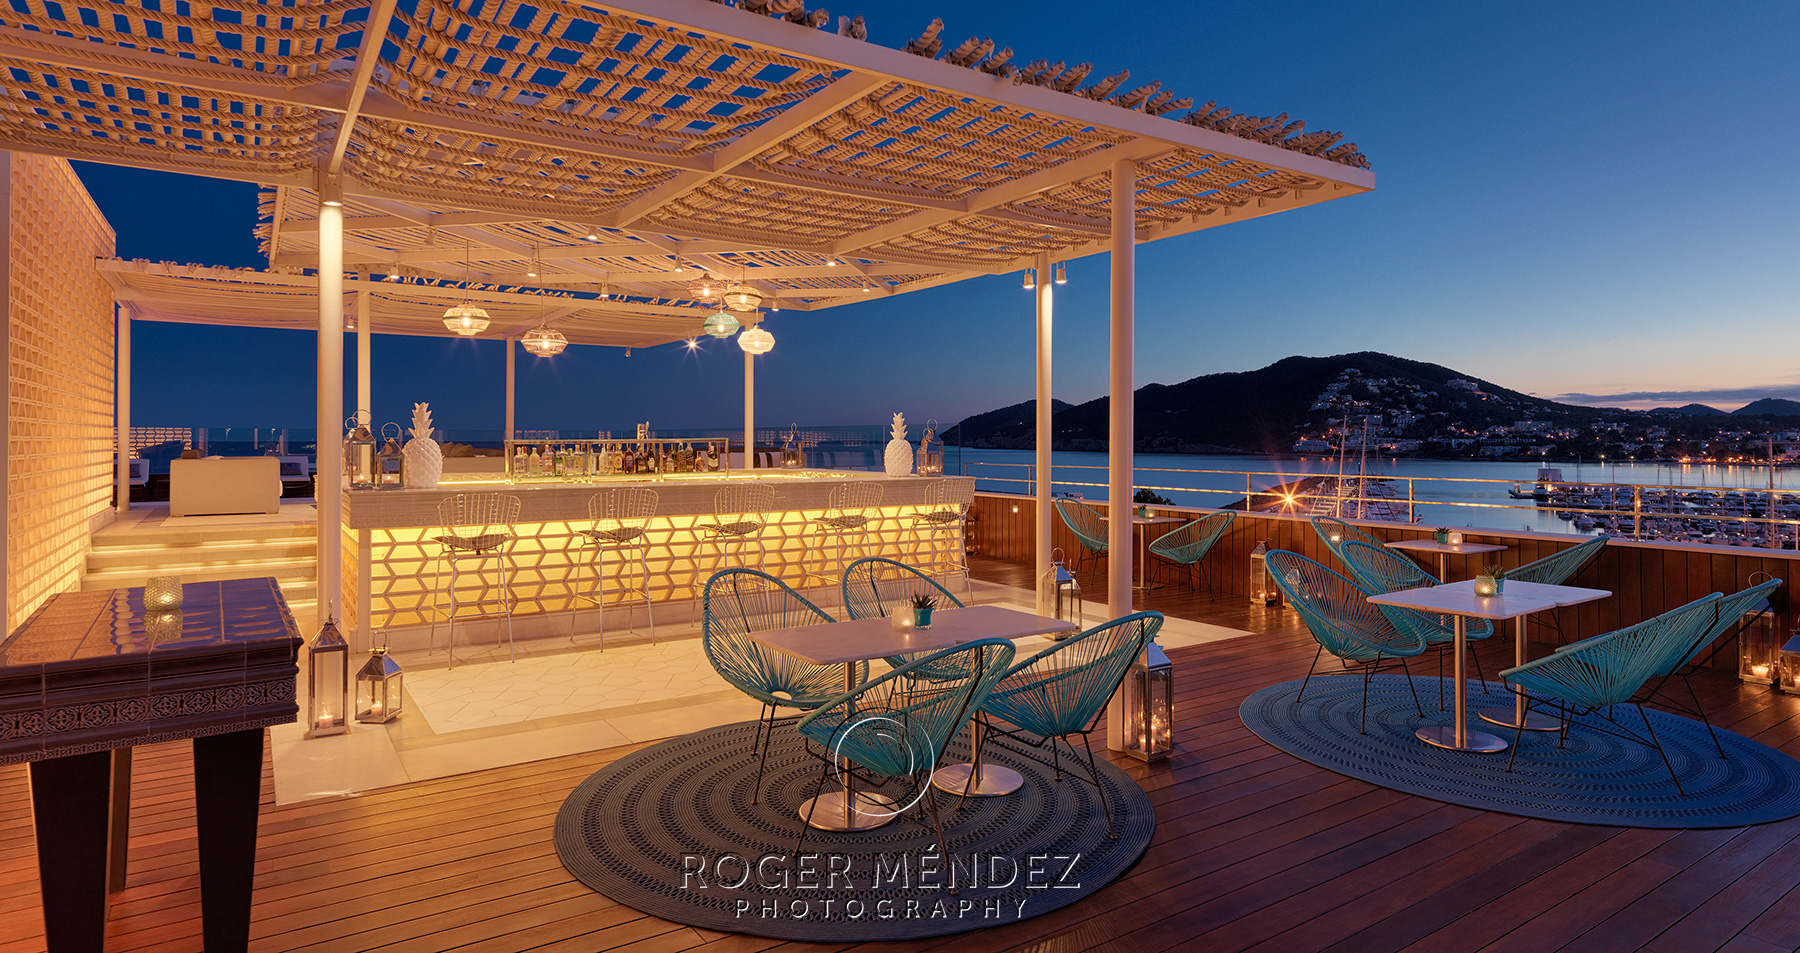 Pool bar azotea al anochecer